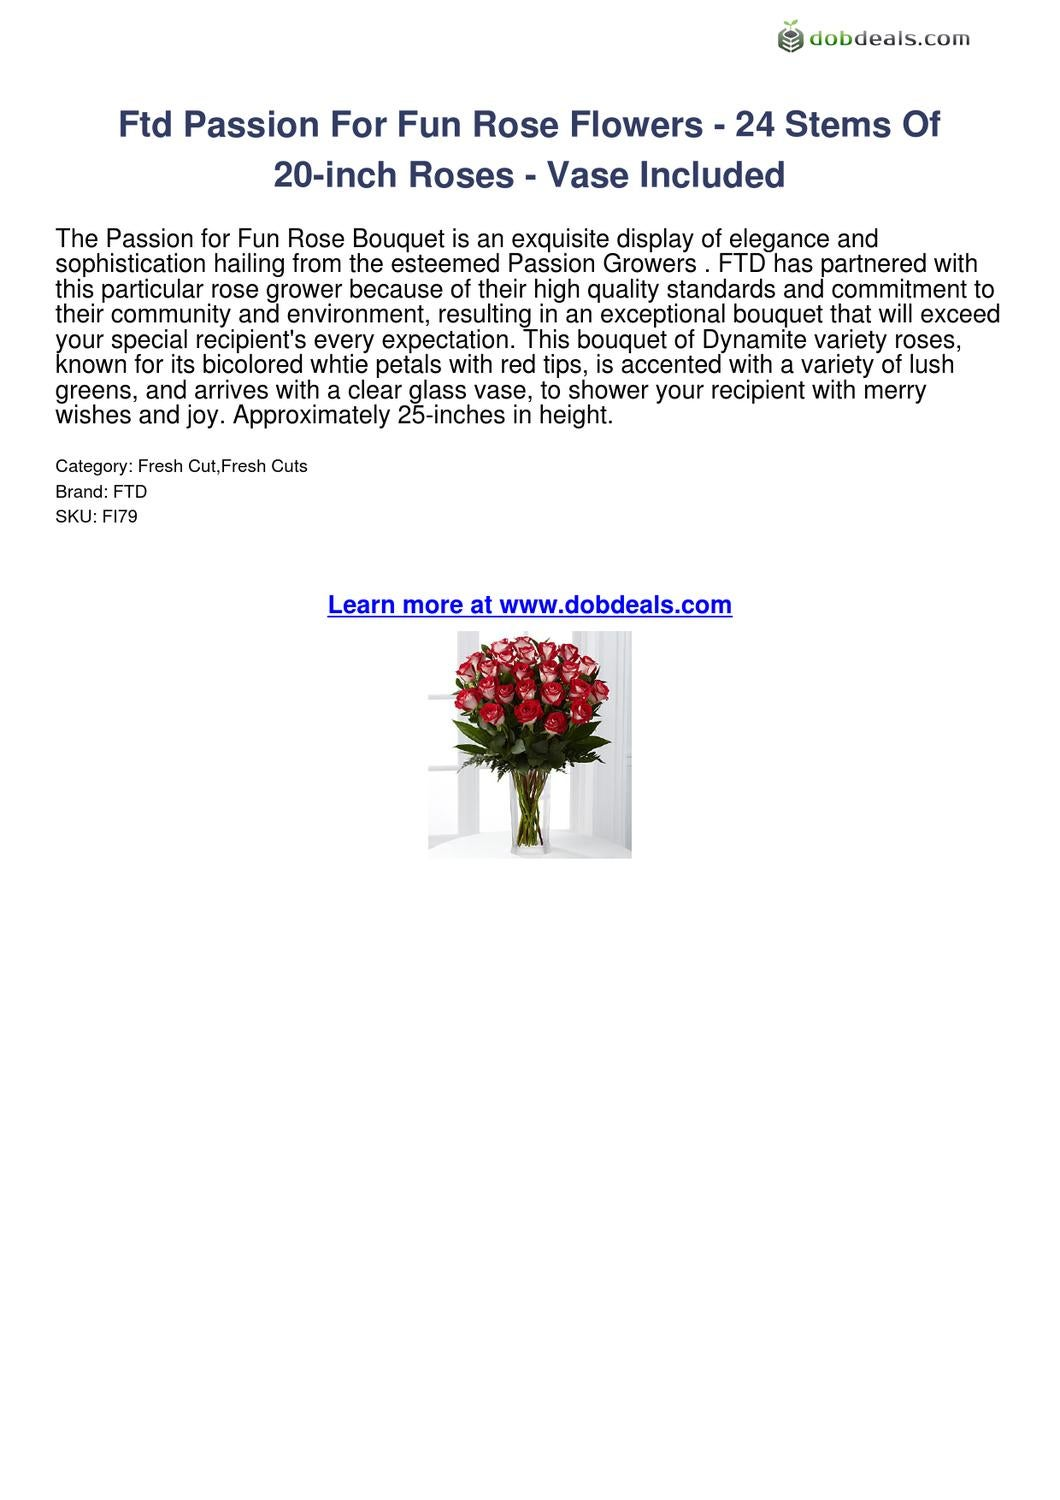 Ftd Passion For Fun Rose Flowers-24 Stems Of 20-inch Roses